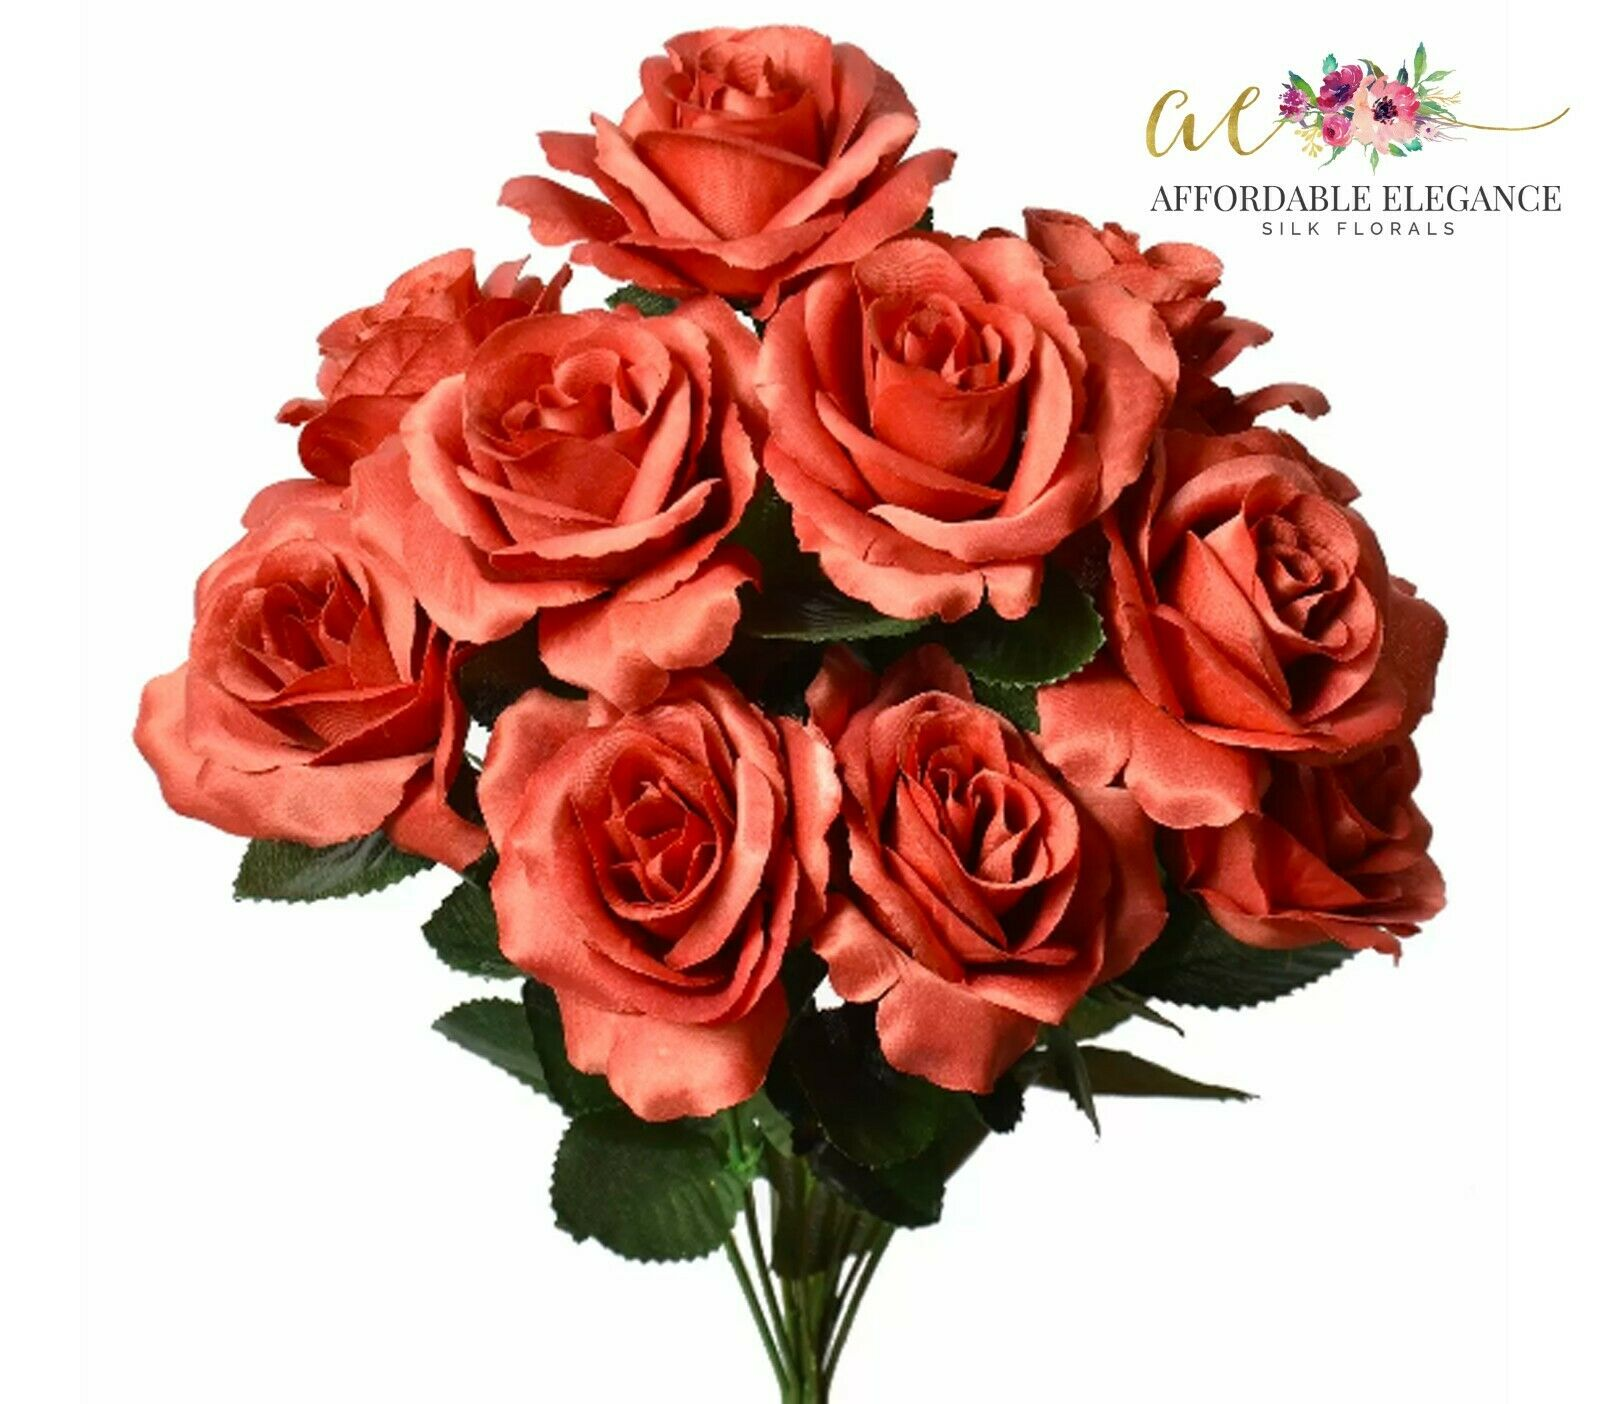 12 open roses many colors bridal bouquets centerpieces silk 12 open roses many colors bridal bouquets centerpieces silk wedding flowers mightylinksfo